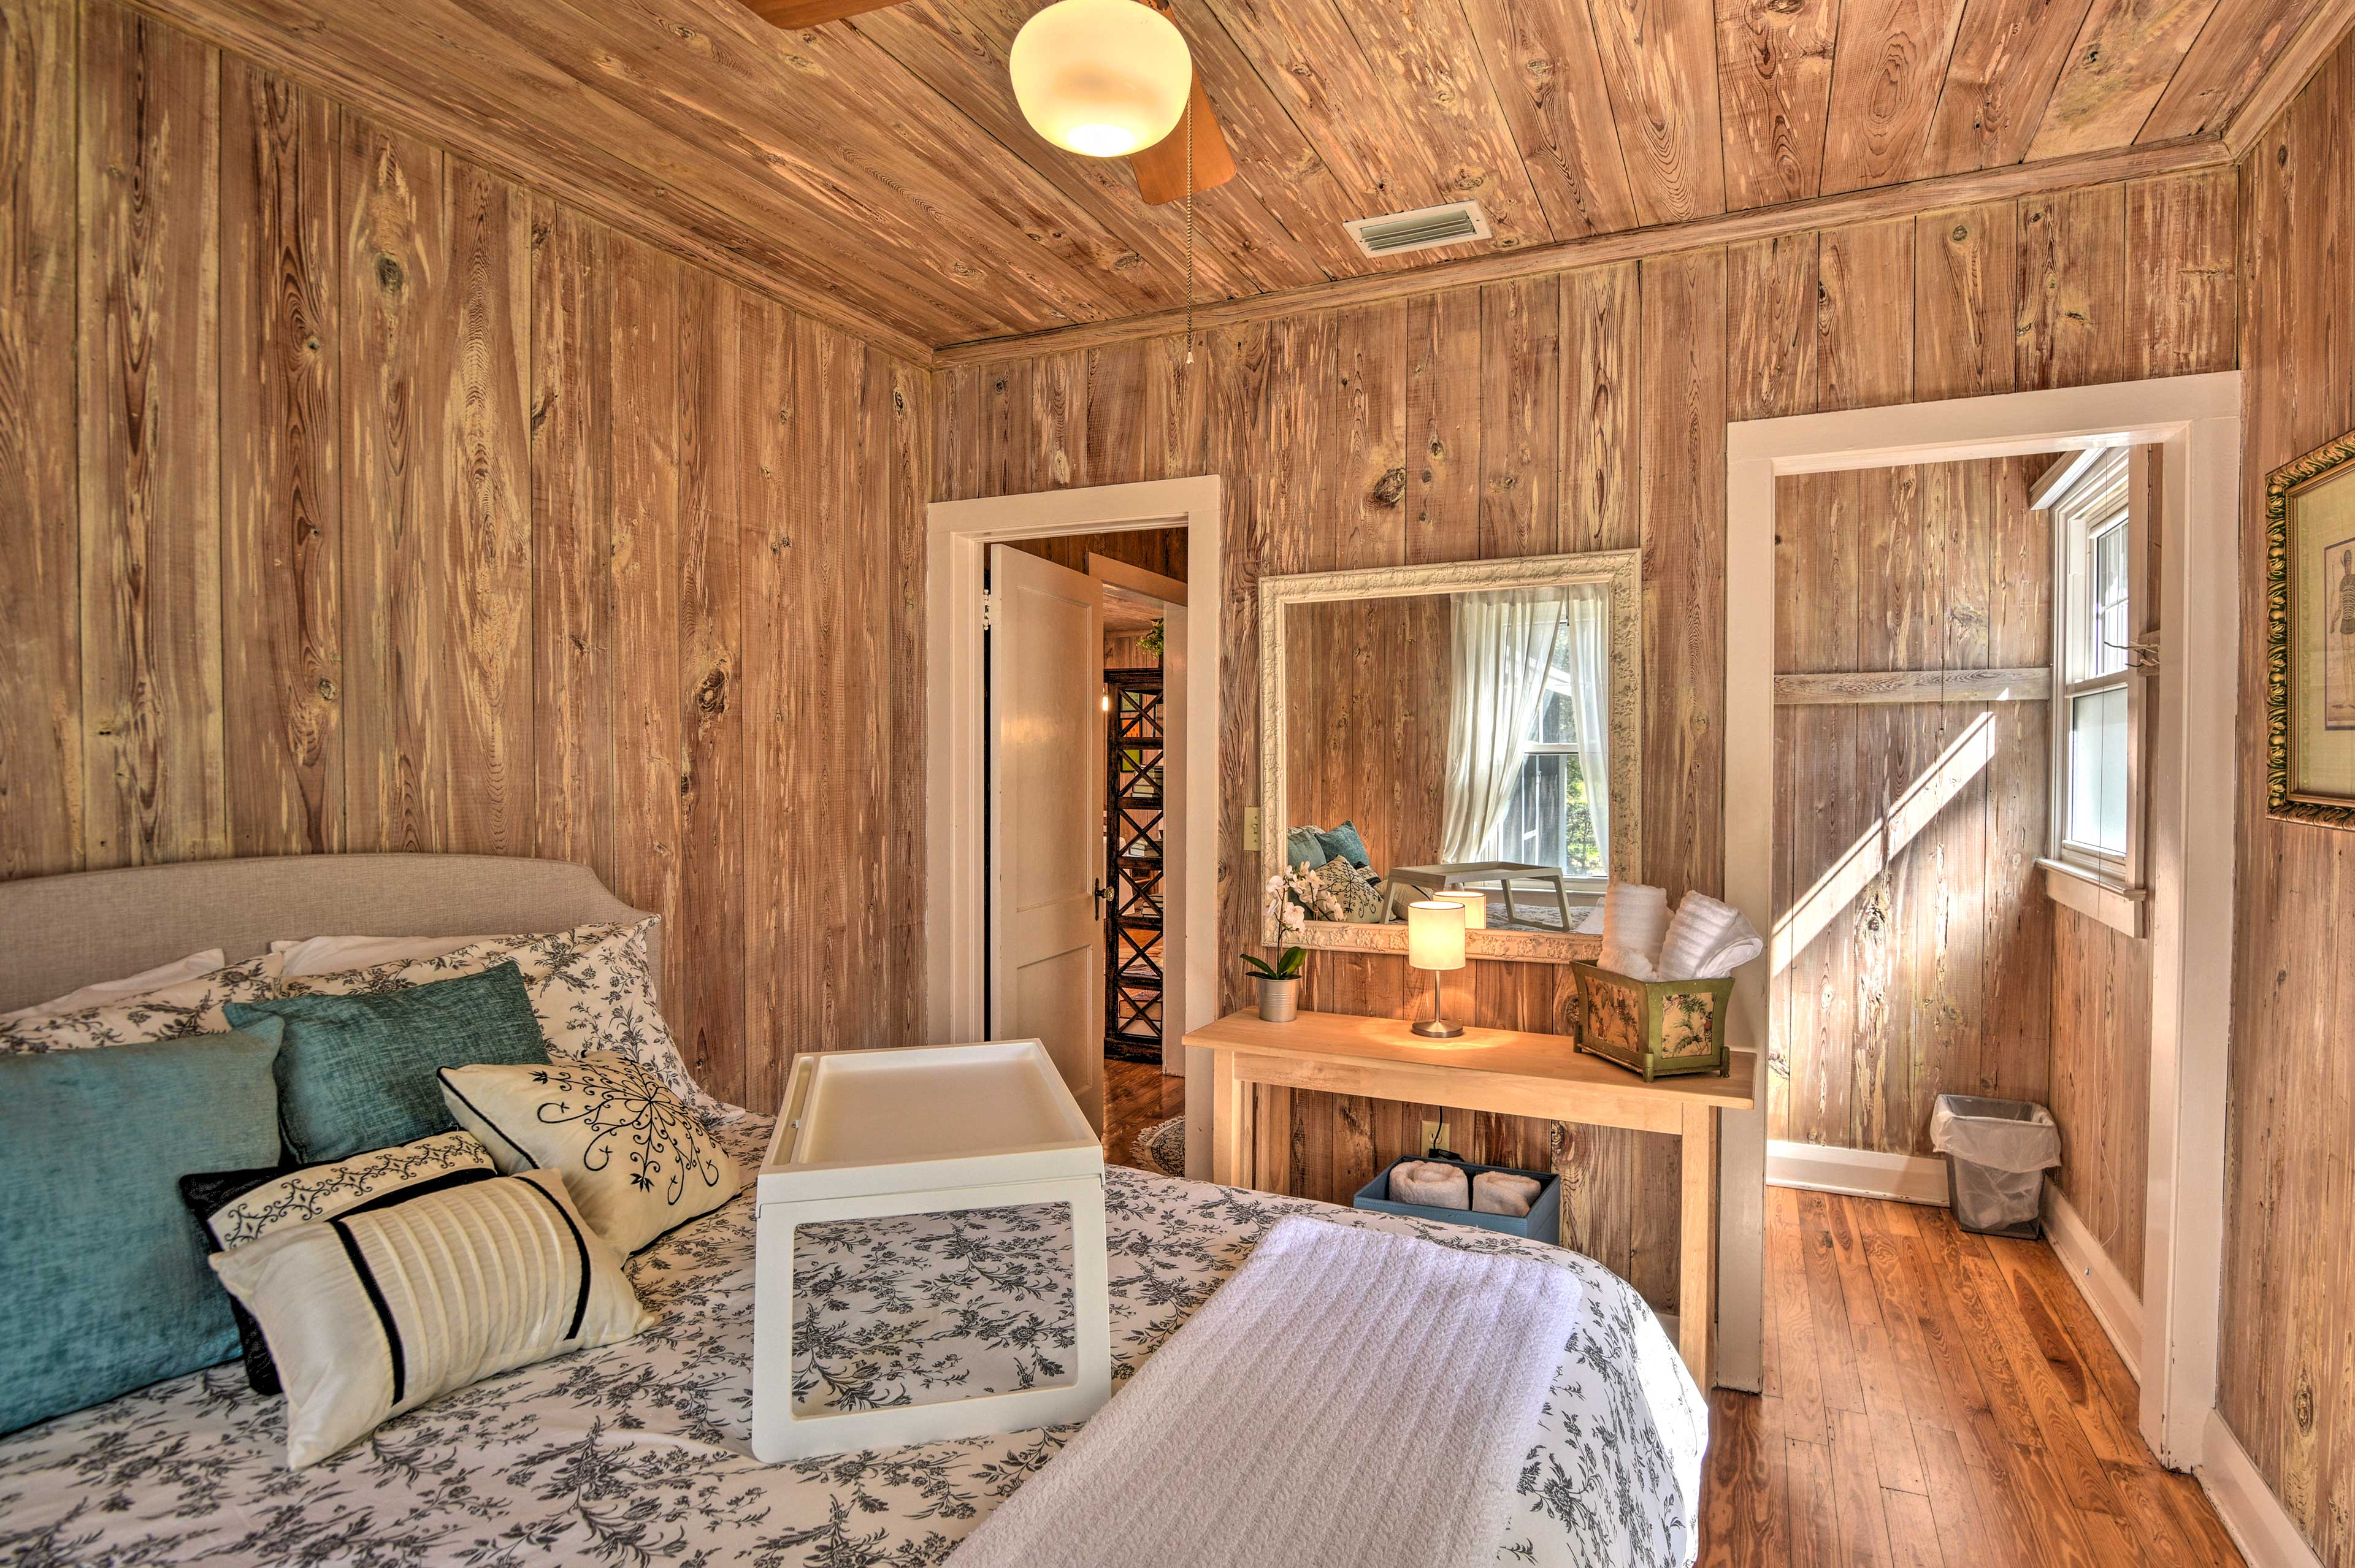 Enjoy a restful night on the queen bed in this room.